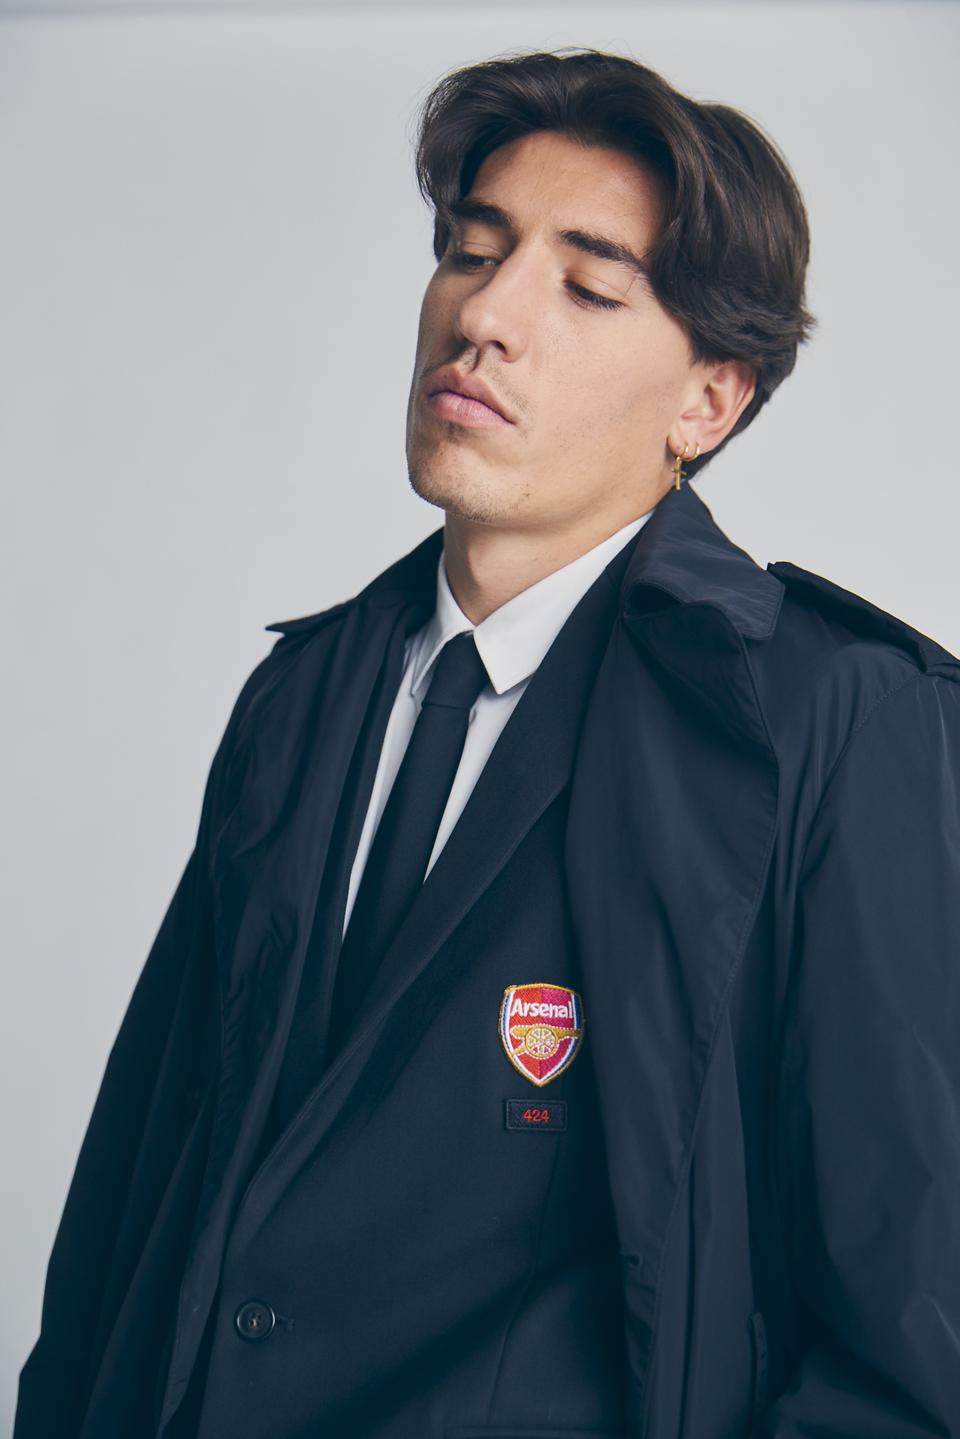 Image of Arsenal player Hector Bellerin in suit.